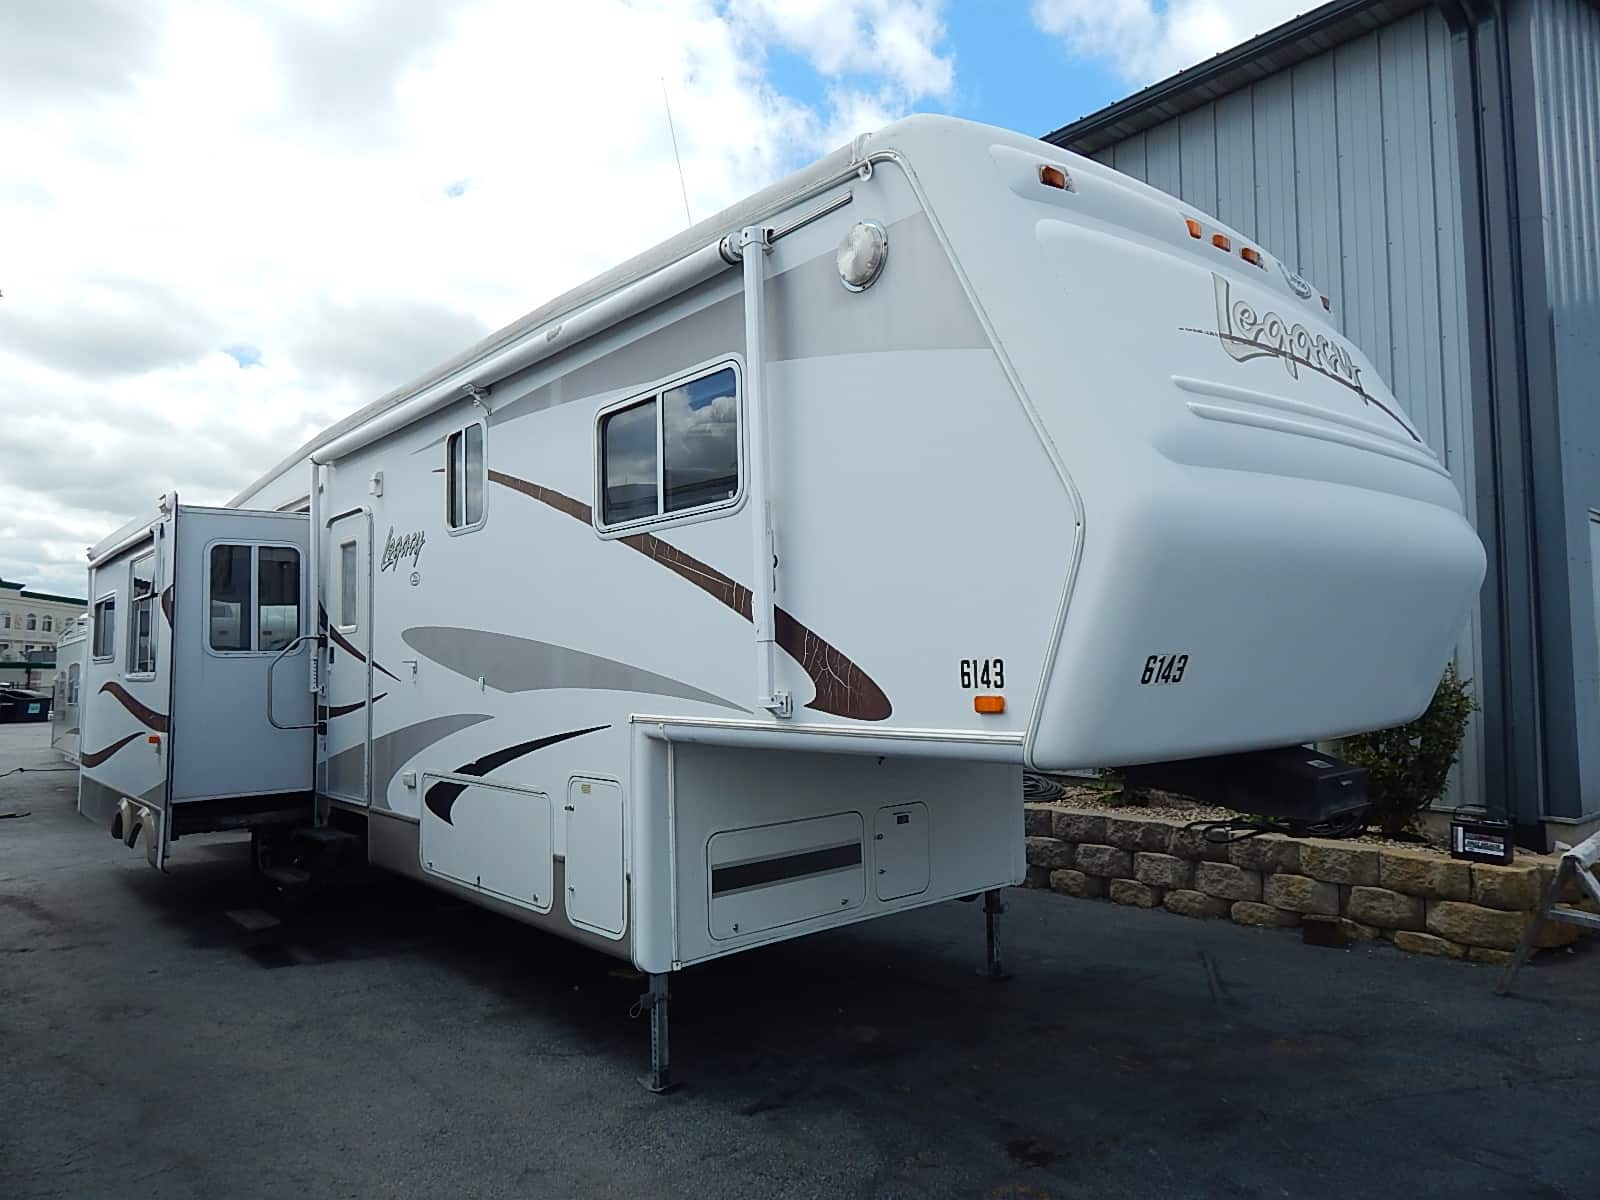 USED 2004 JAYCO LEGACY 3610RLTS - Rick's RV Center